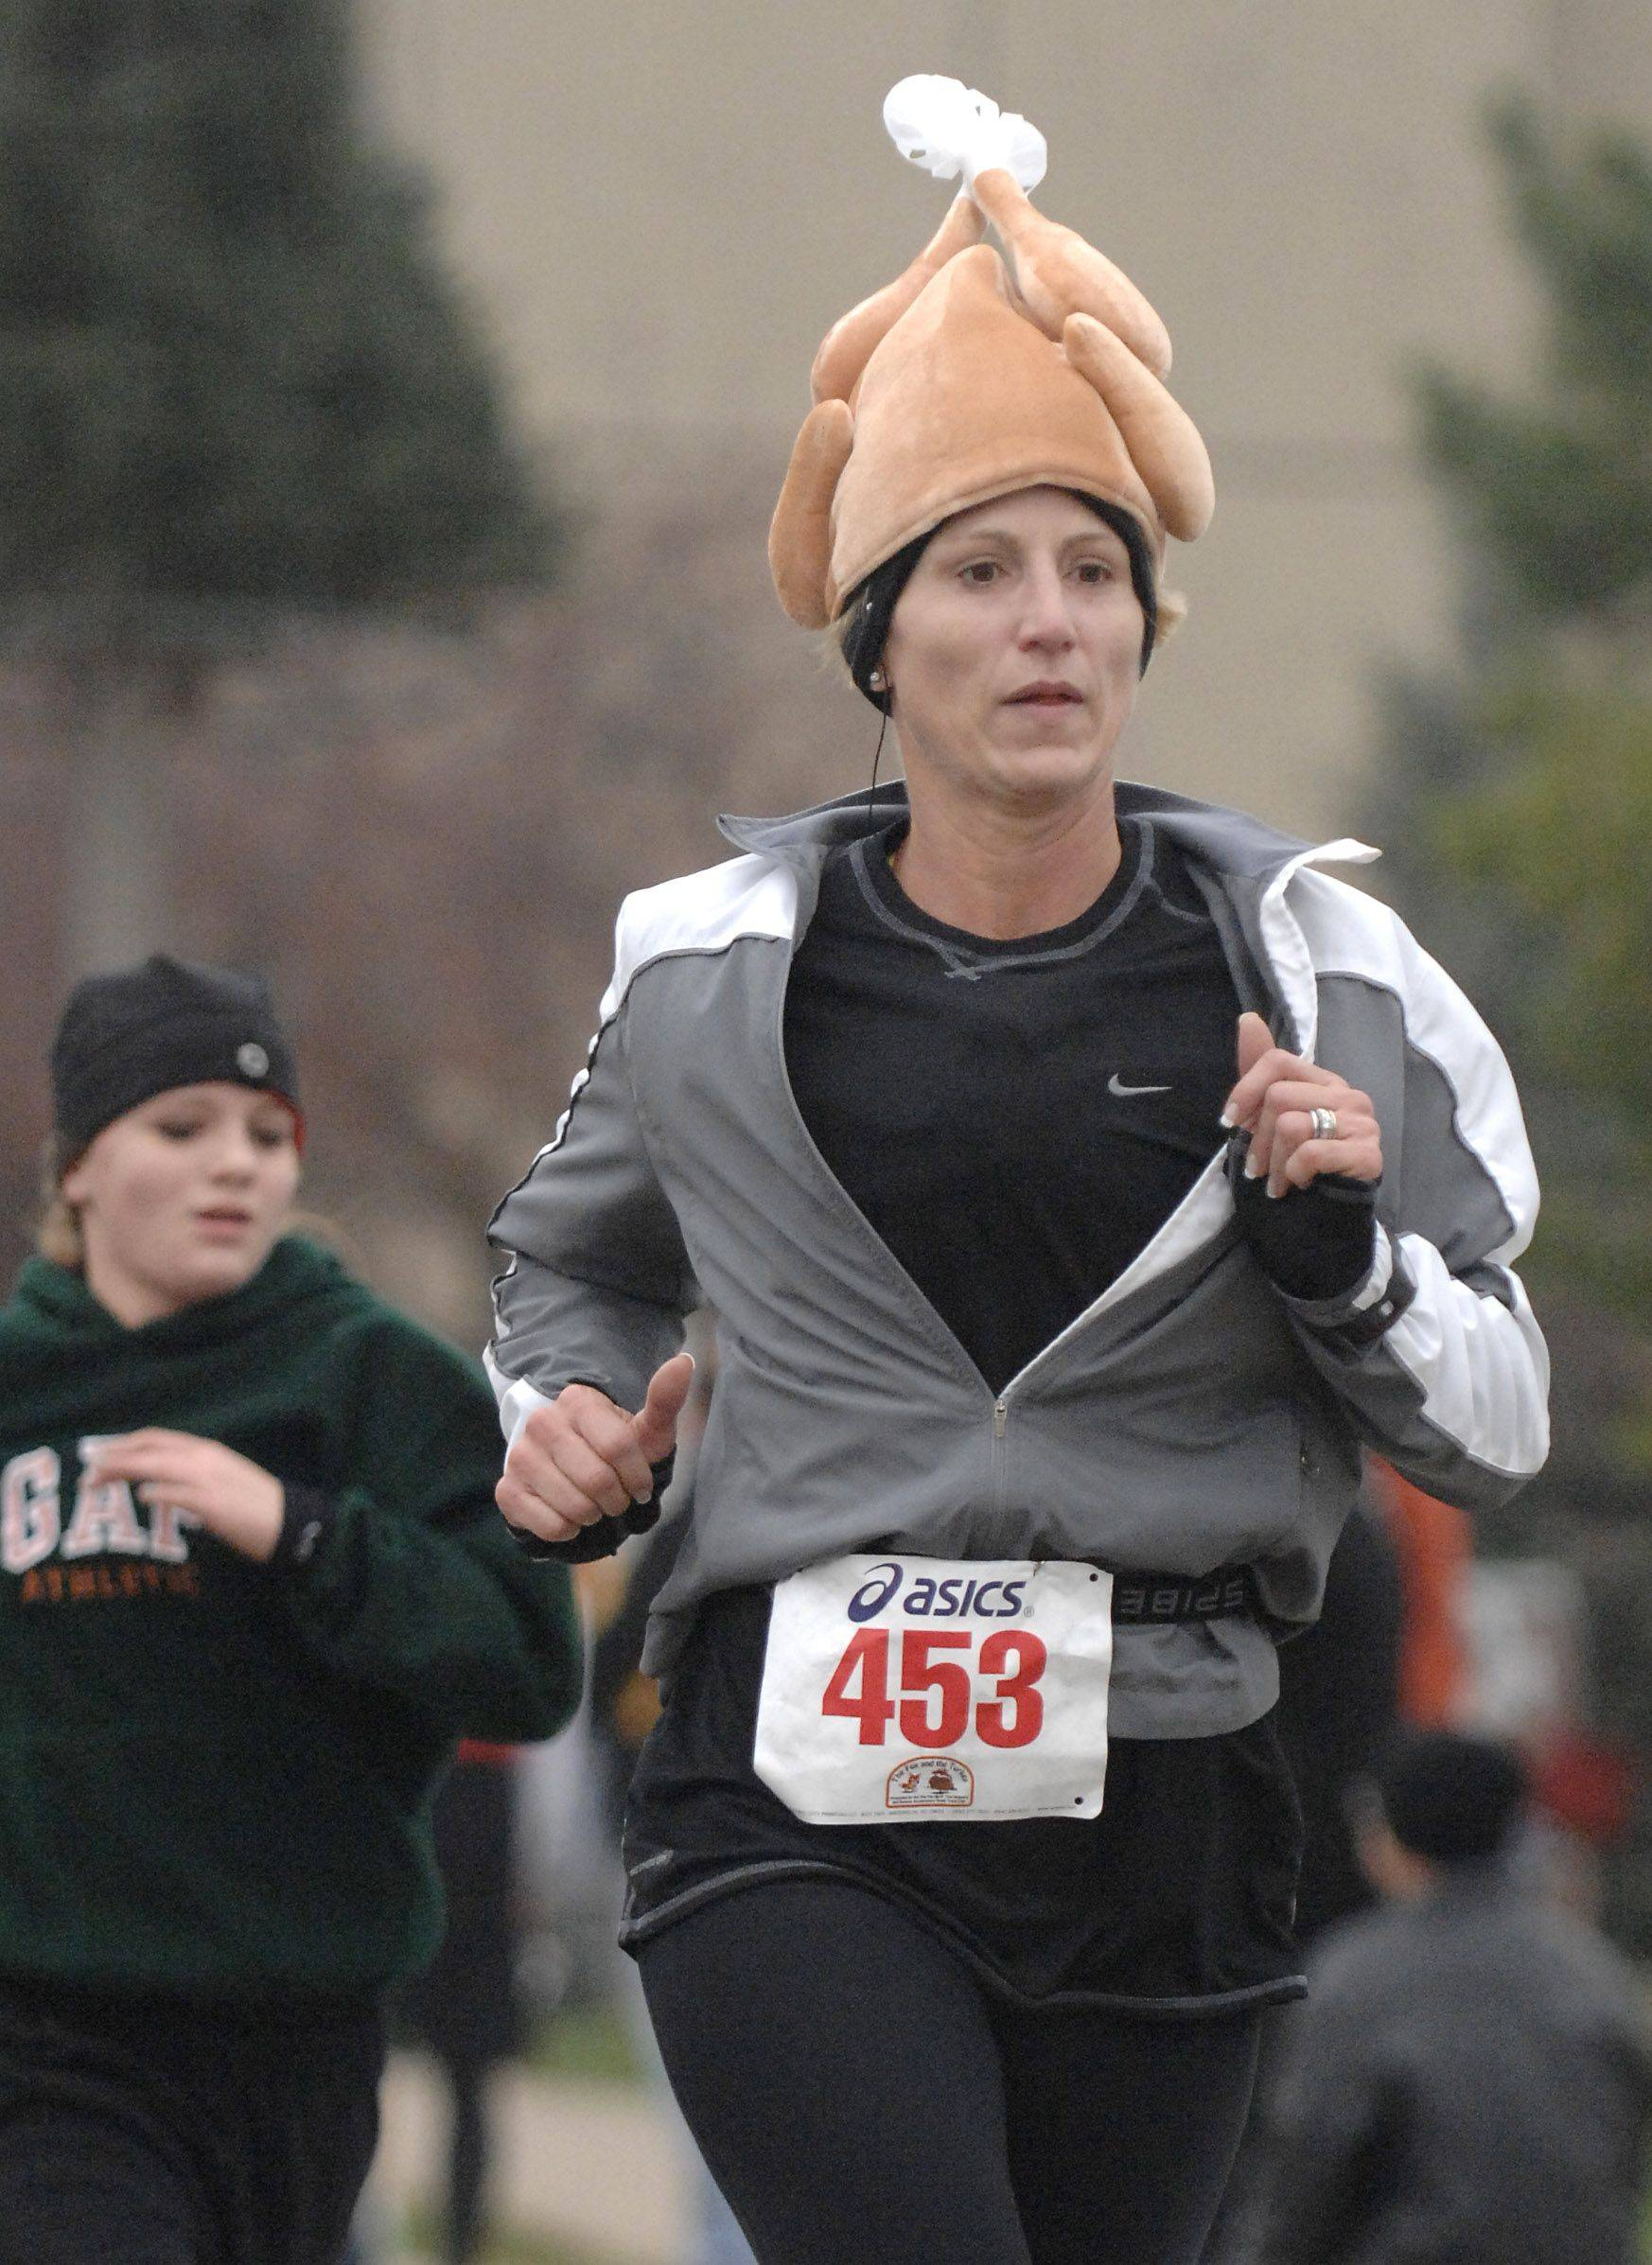 Bethann Bock of South Elgin nears the finish line in the 15th annual Fox and the Turkey 4-Mile race Thursday in Batavia. Bock ran with her son, Rob, and several other family members visiting from out of town.